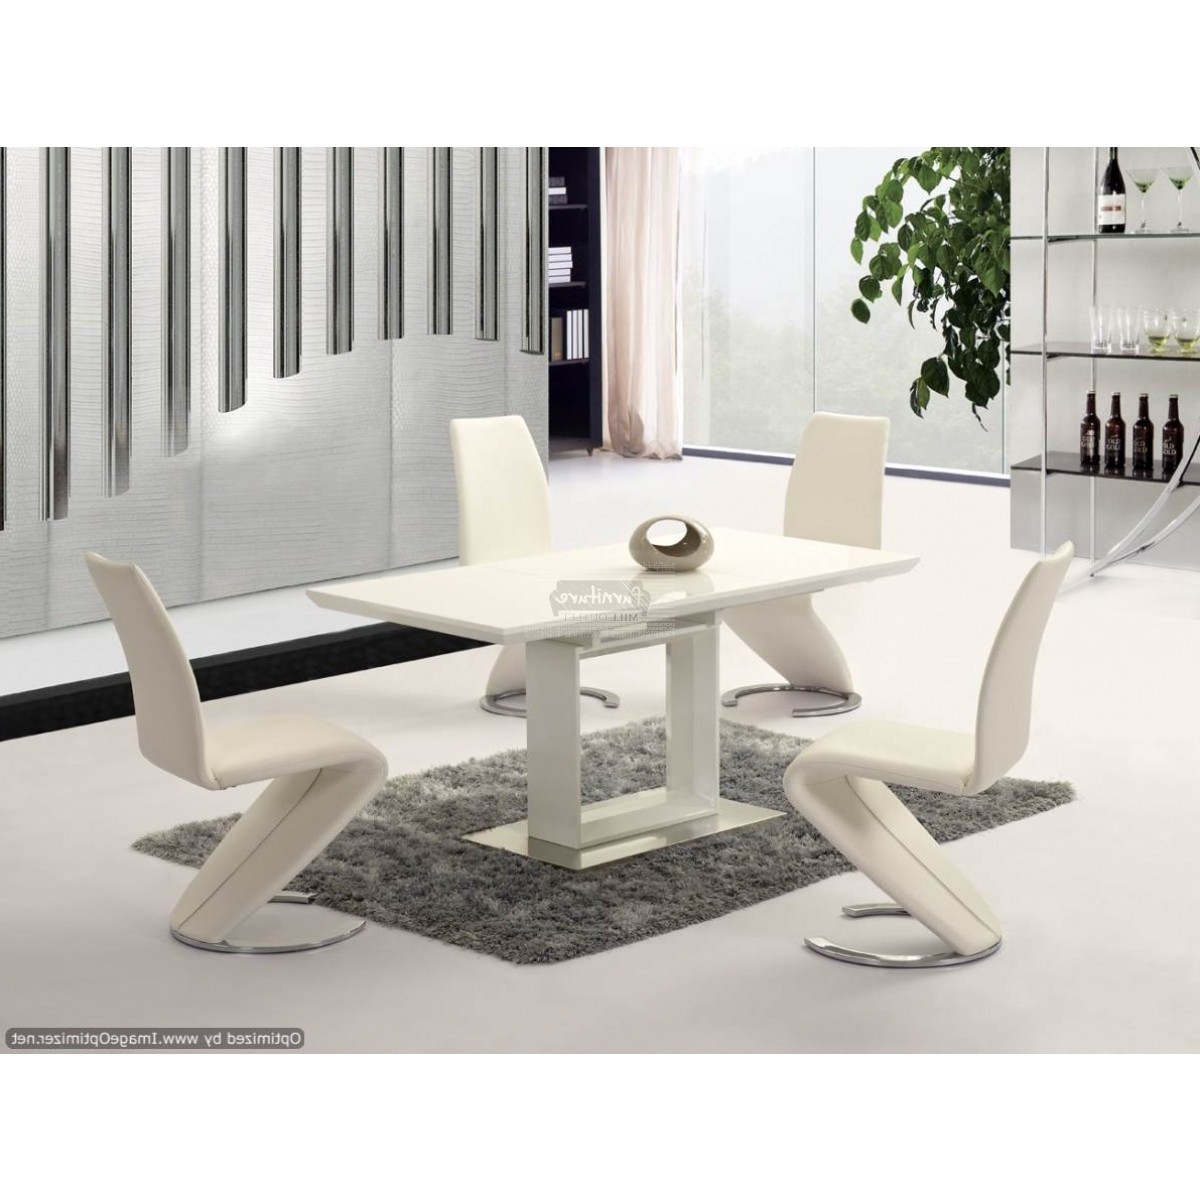 Space White High Gloss Extending Dining Table – 120Cm To 160Cm Throughout Most Up To Date High Gloss Dining Sets (View 17 of 25)